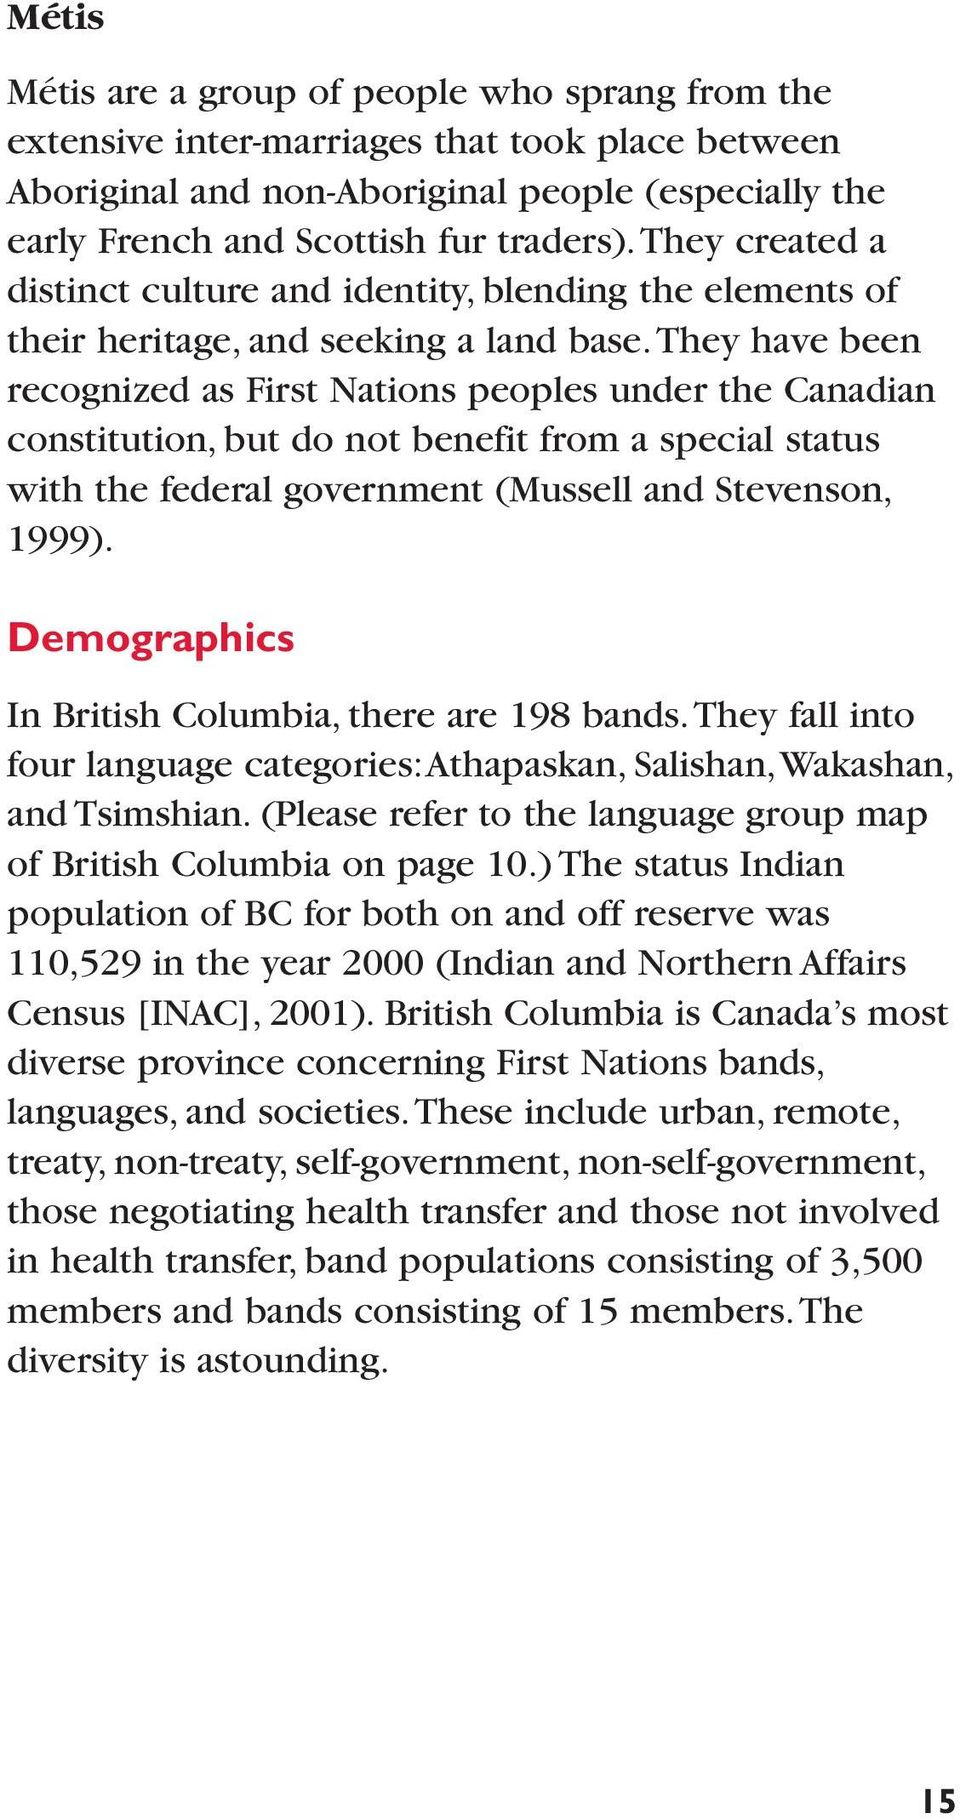 They have been recognized as First Nations peoples under the Canadian constitution, but do not benefit from a special status with the federal government (Mussell and Stevenson, 1999).